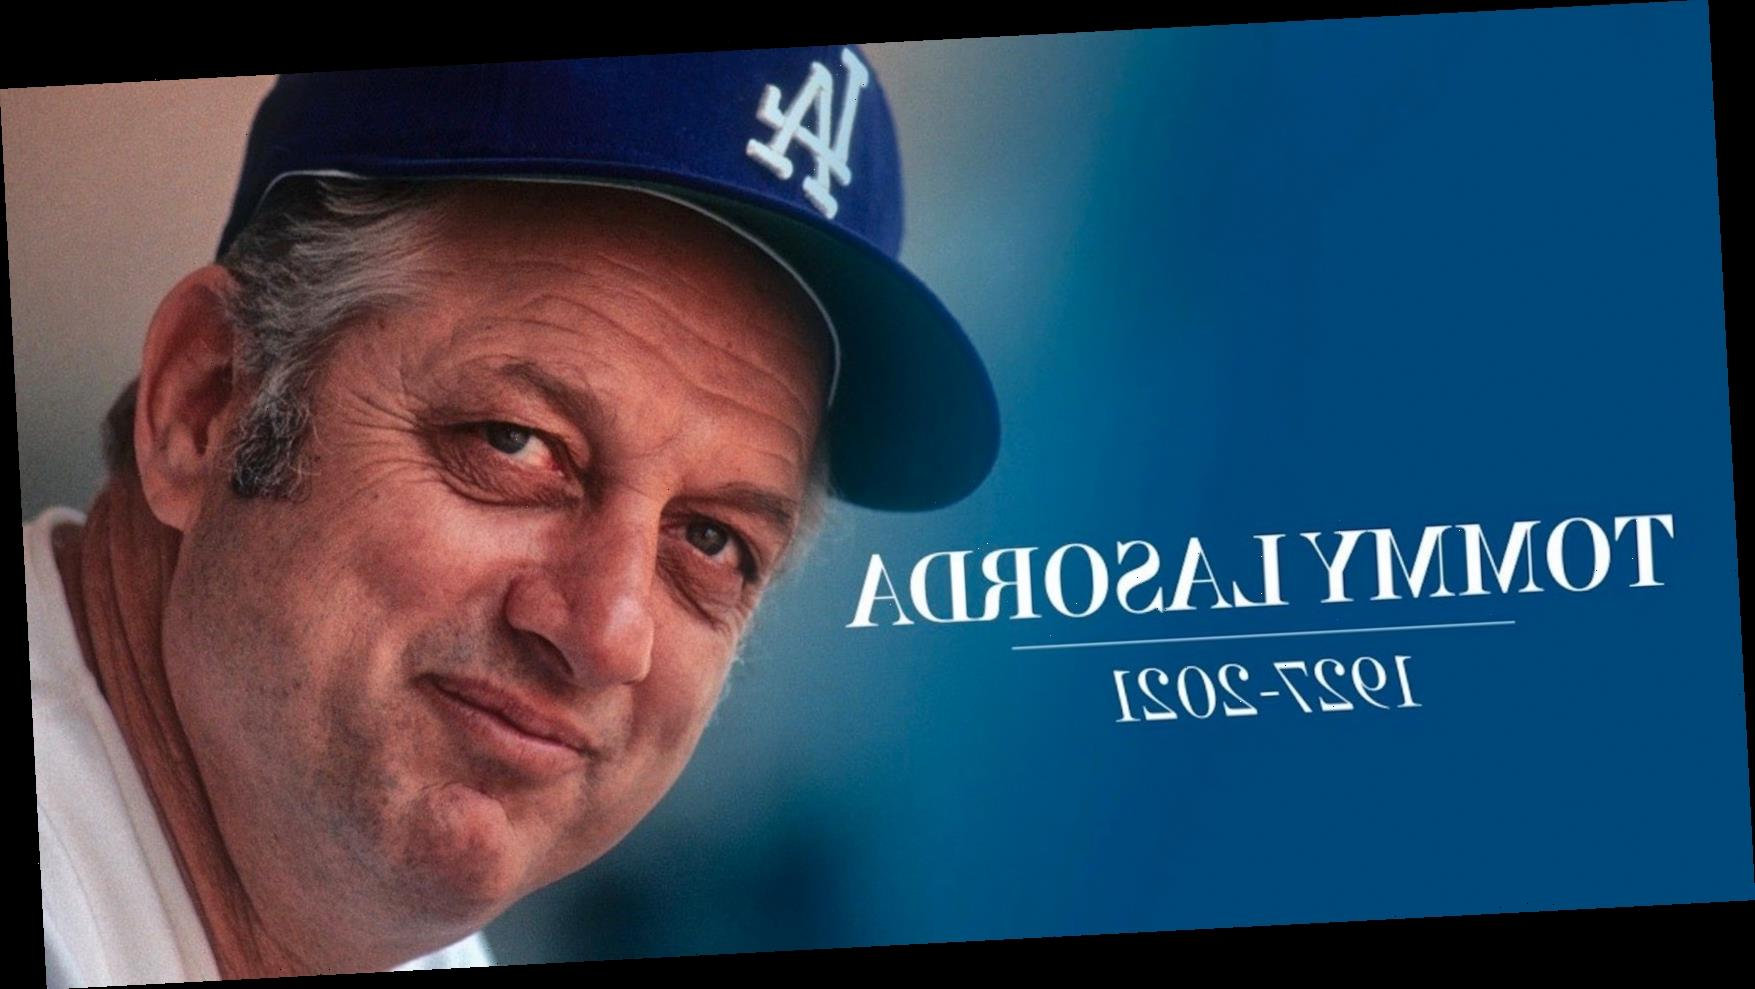 Legendary Dodgers Manager Tommy Lasorda Dies At 93